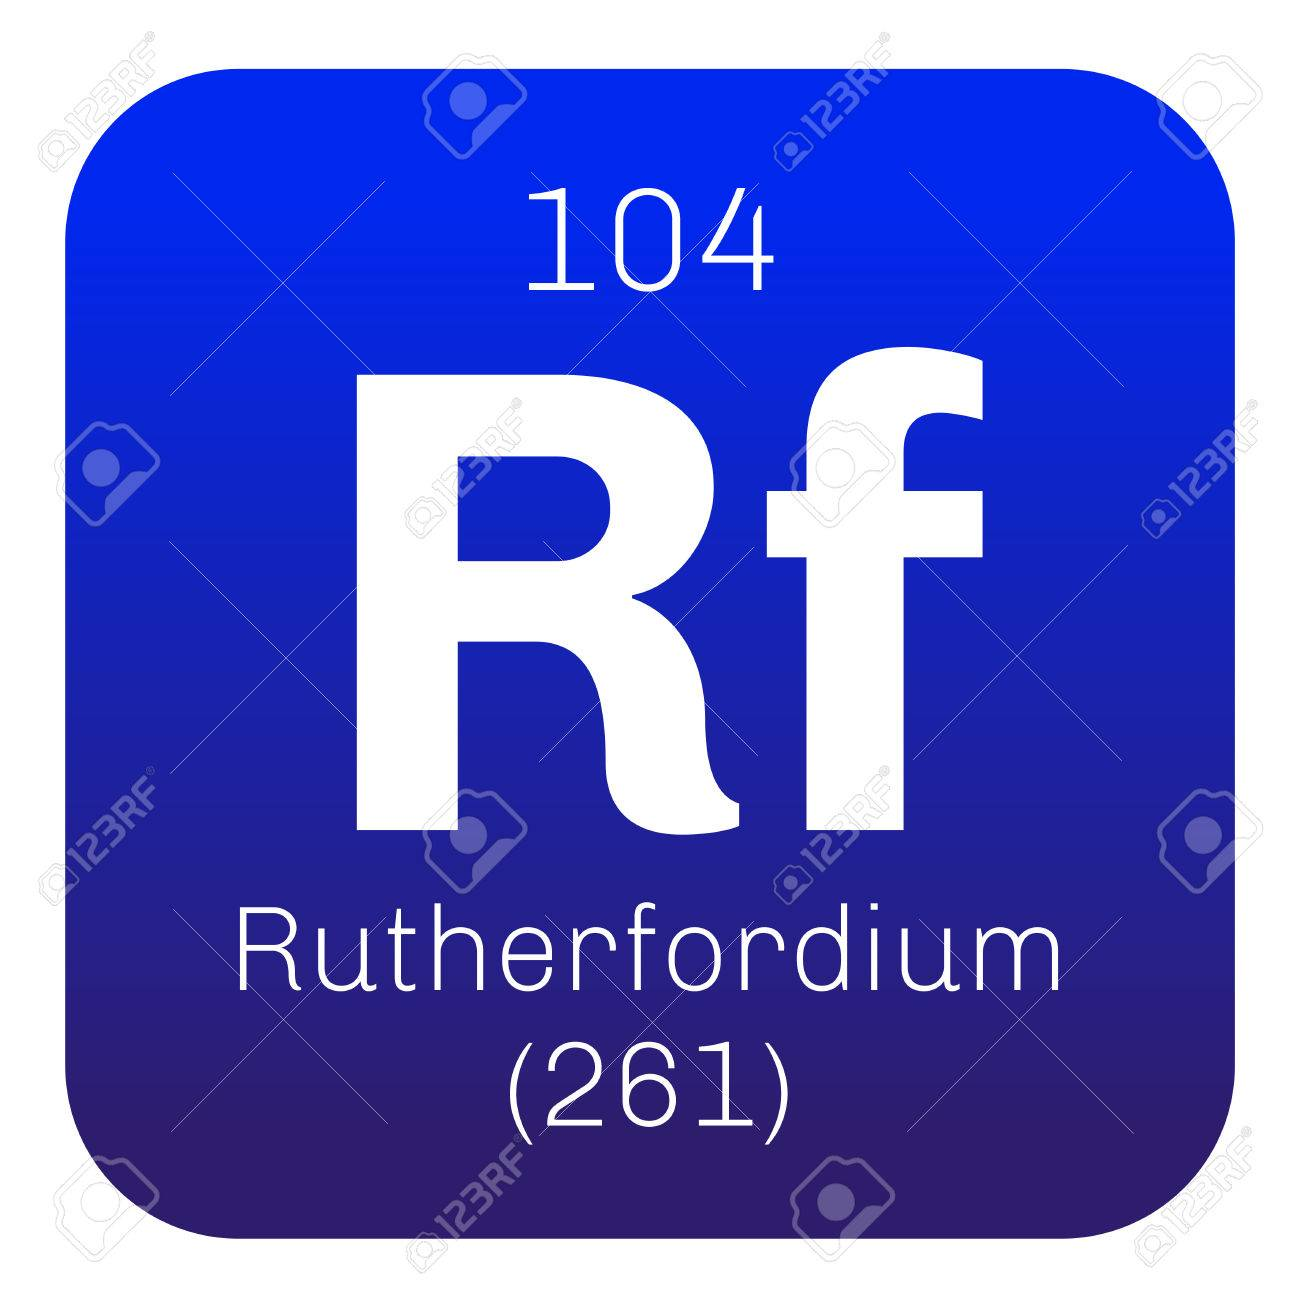 Rutherfordium stock photos pictures royalty free rutherfordium rutherfordium chemical element radioactive synthetic element colored icon with atomic number and atomic weight gamestrikefo Gallery